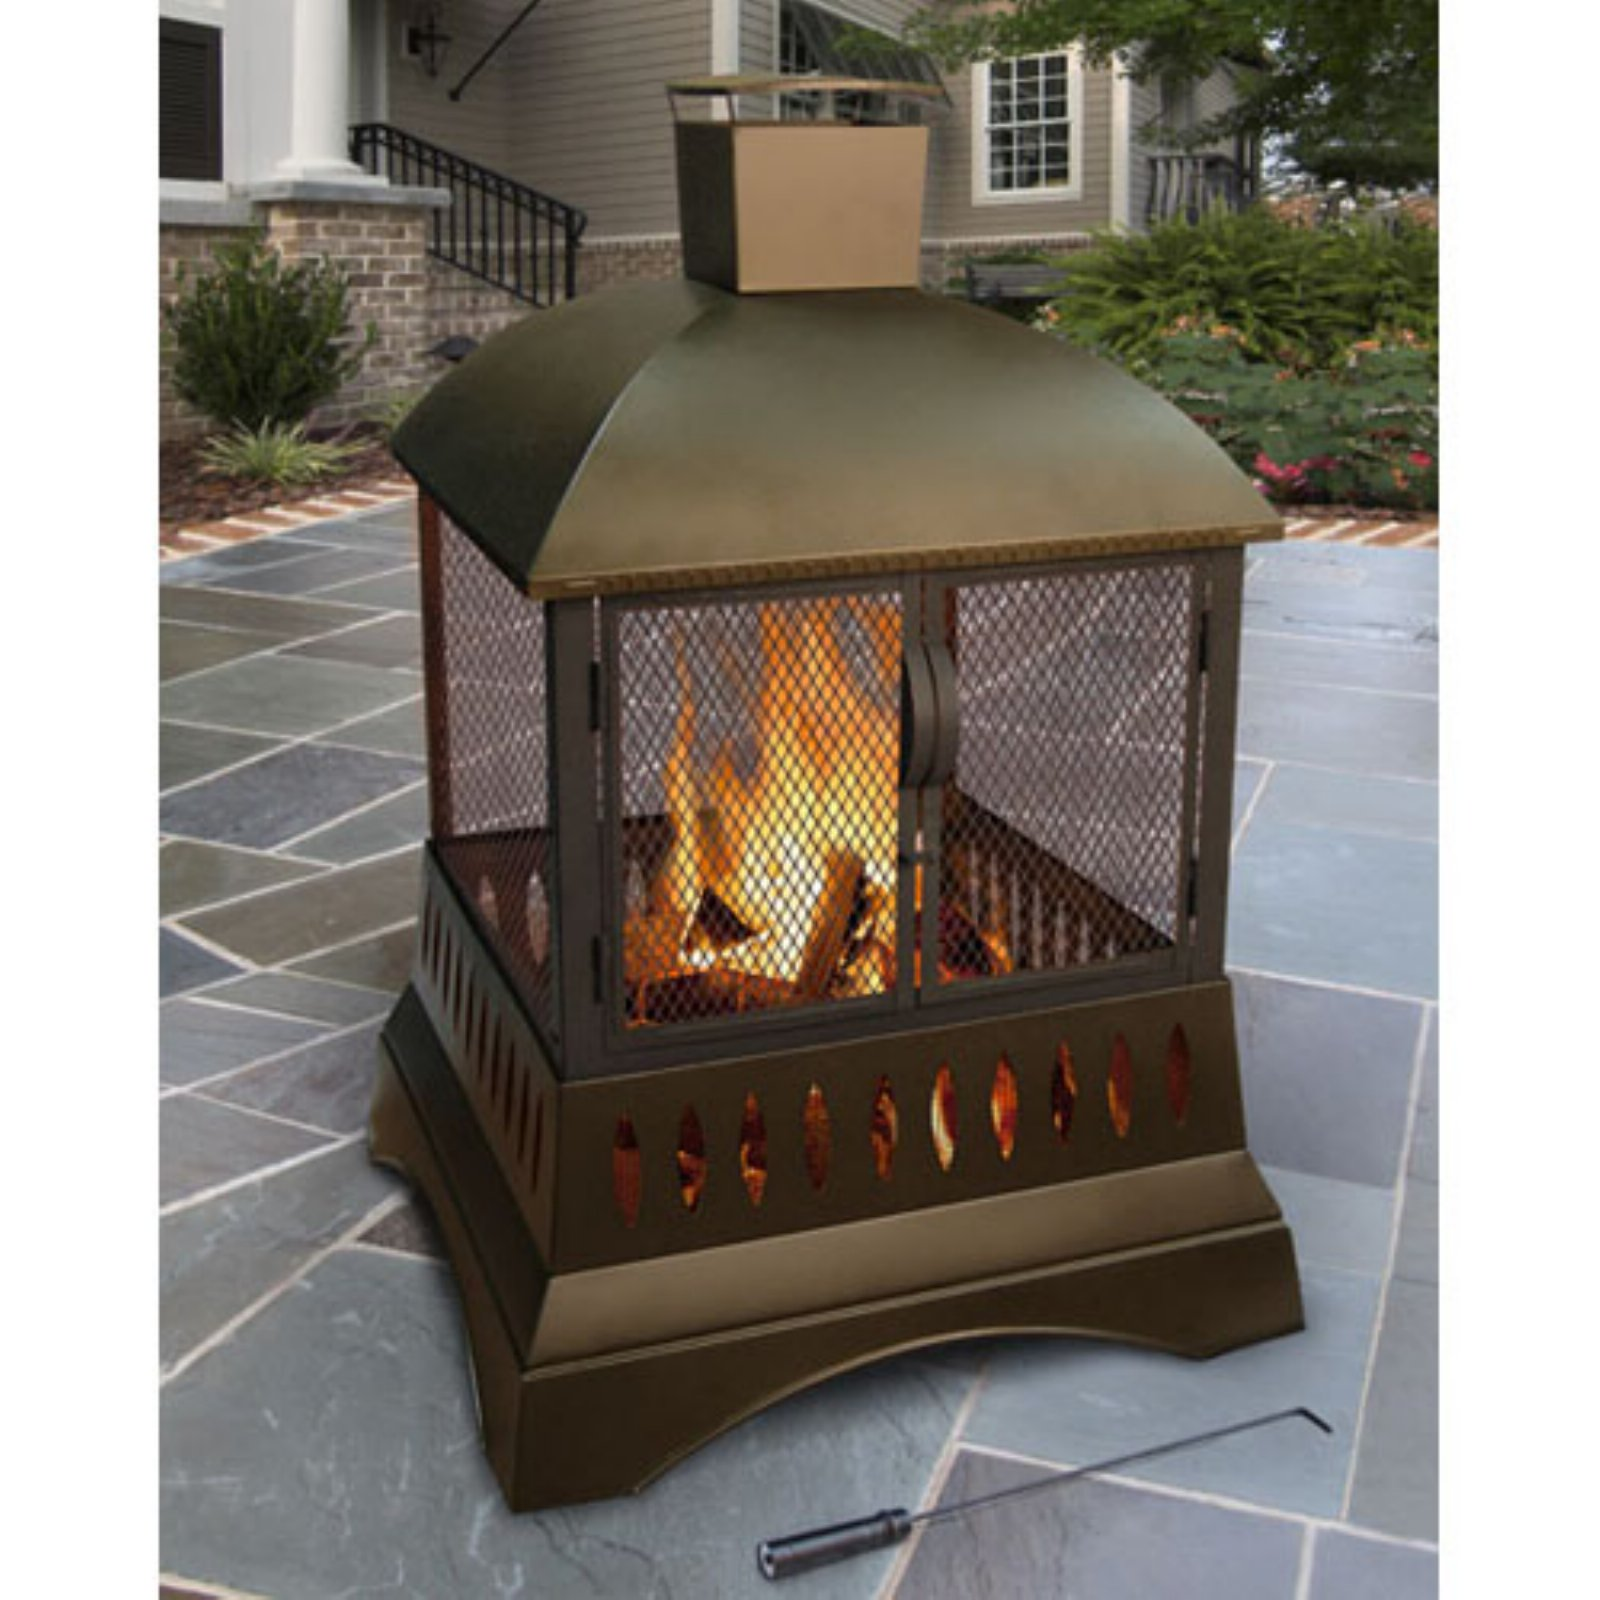 Landmann Grandezza Wood Burning Outdoor Fireplace by Landmann USA